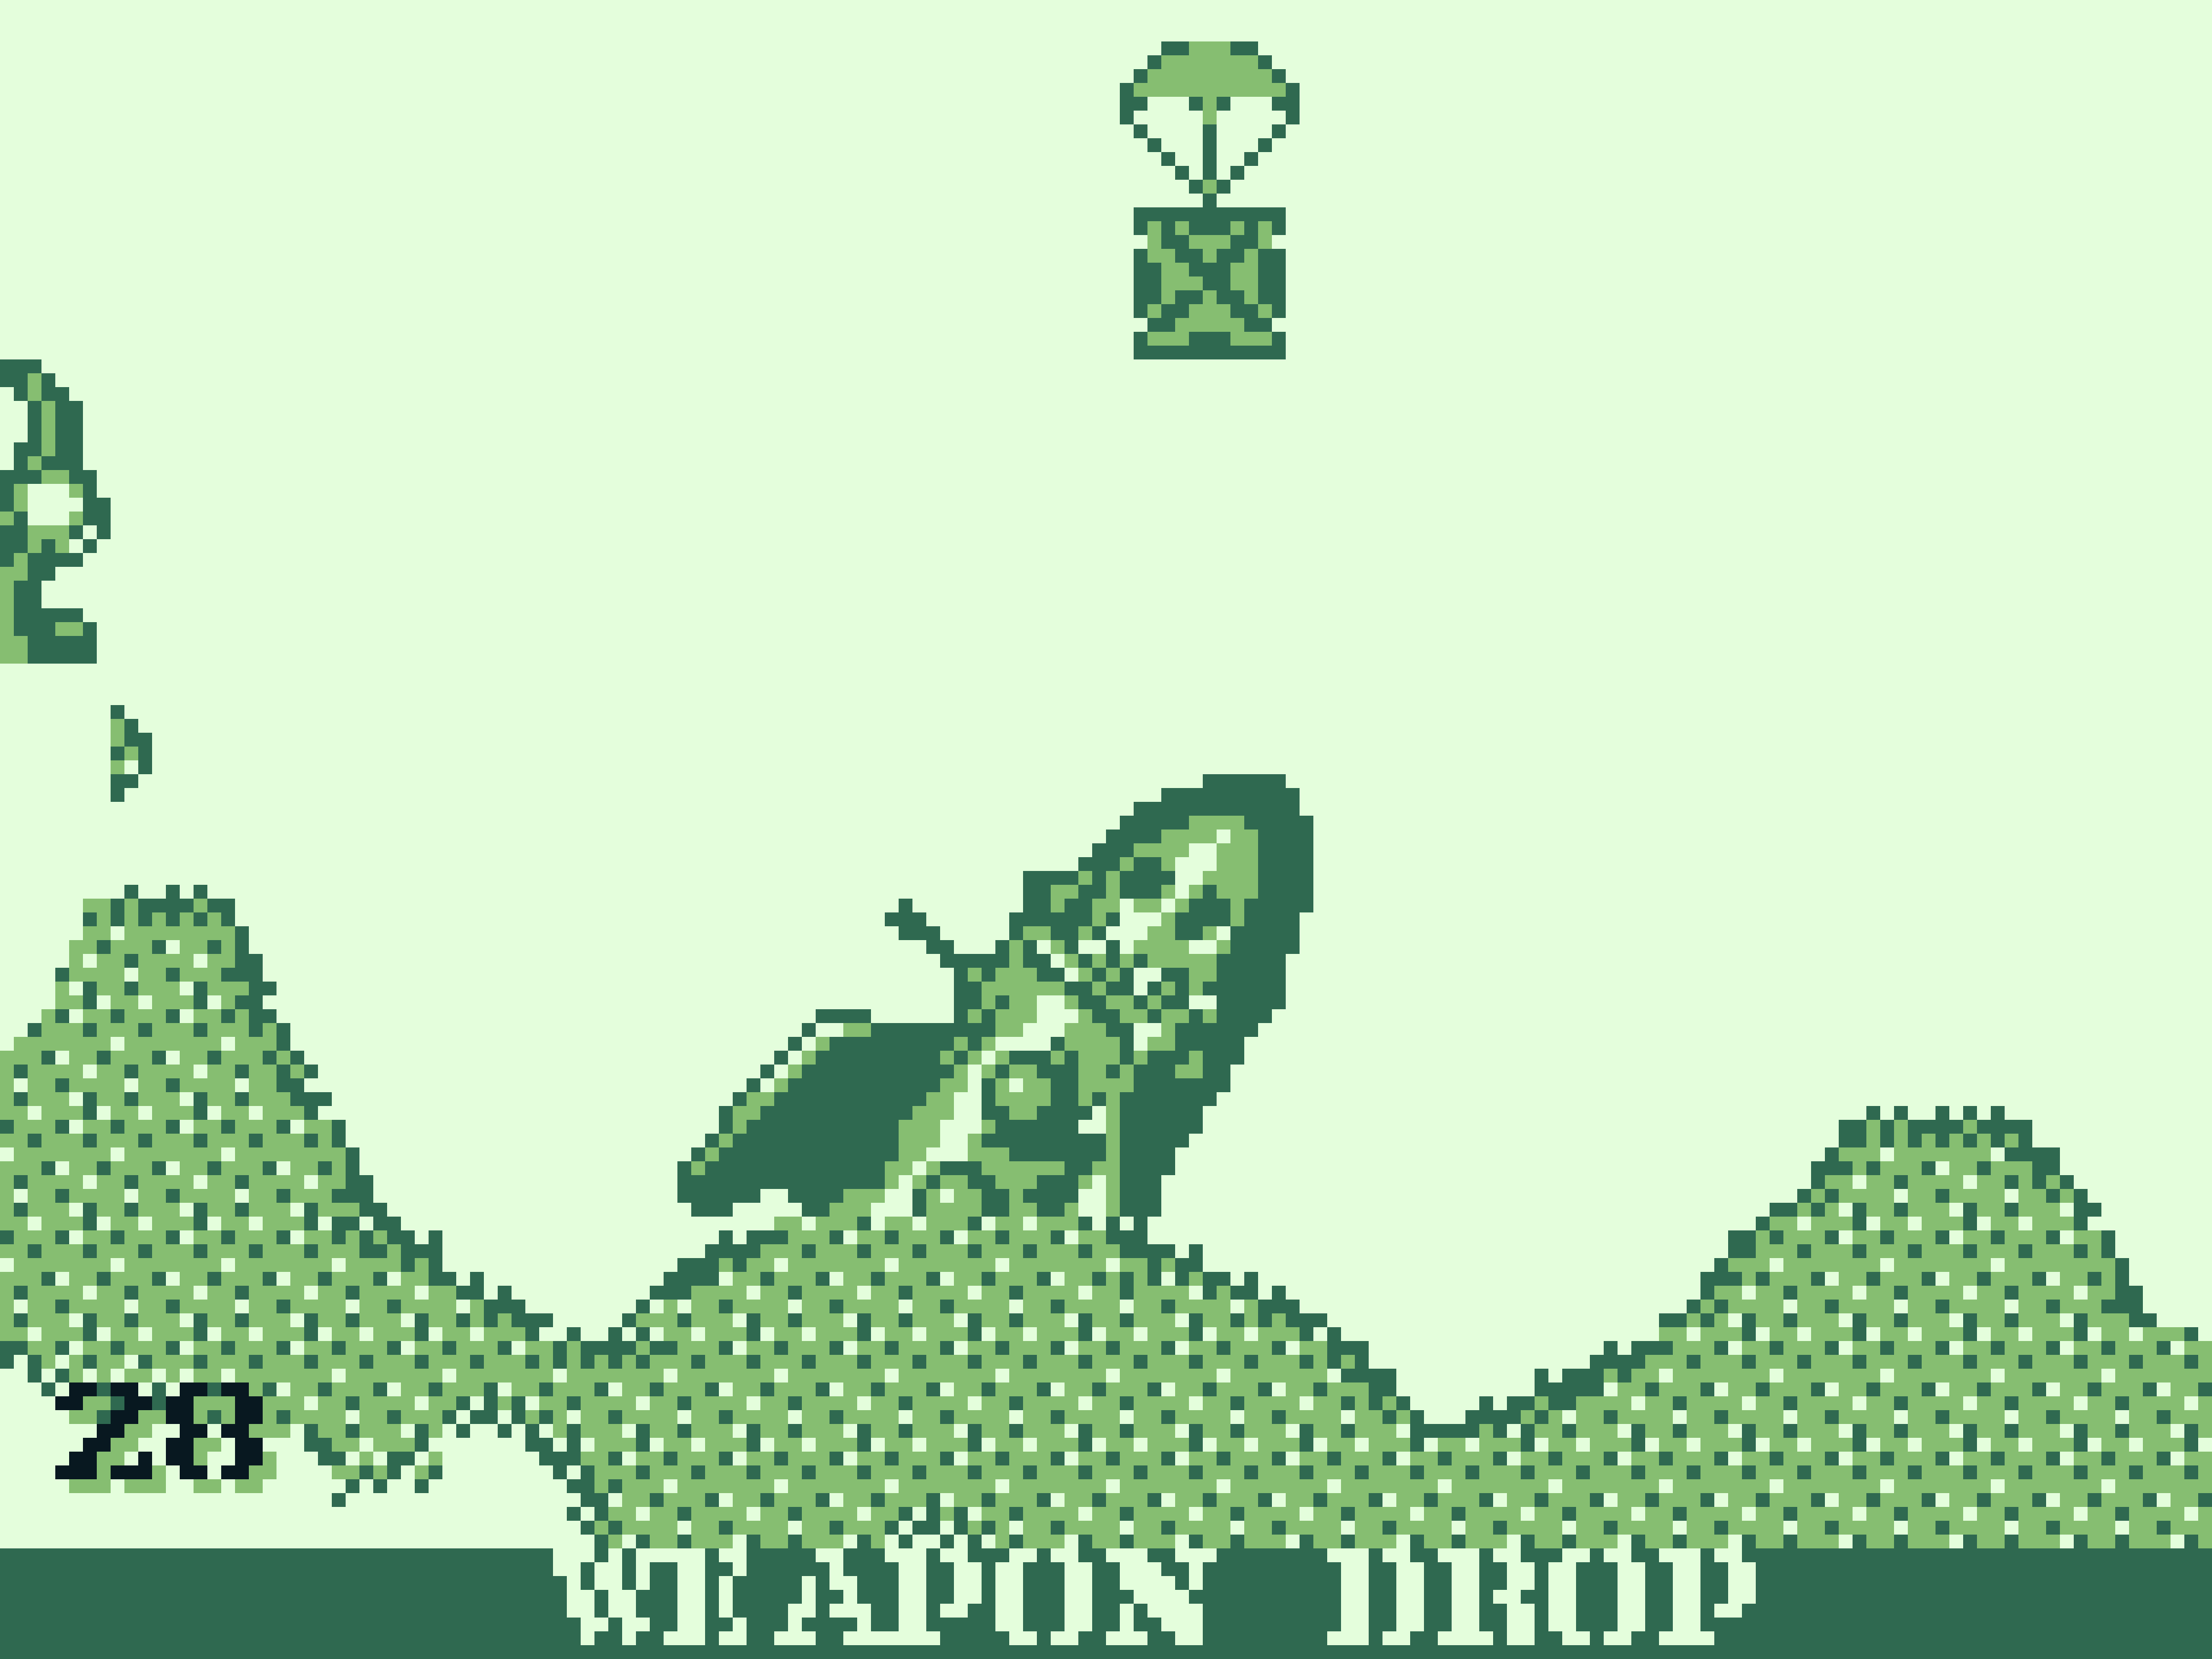 A weapon drop in Worms on the Game Boy